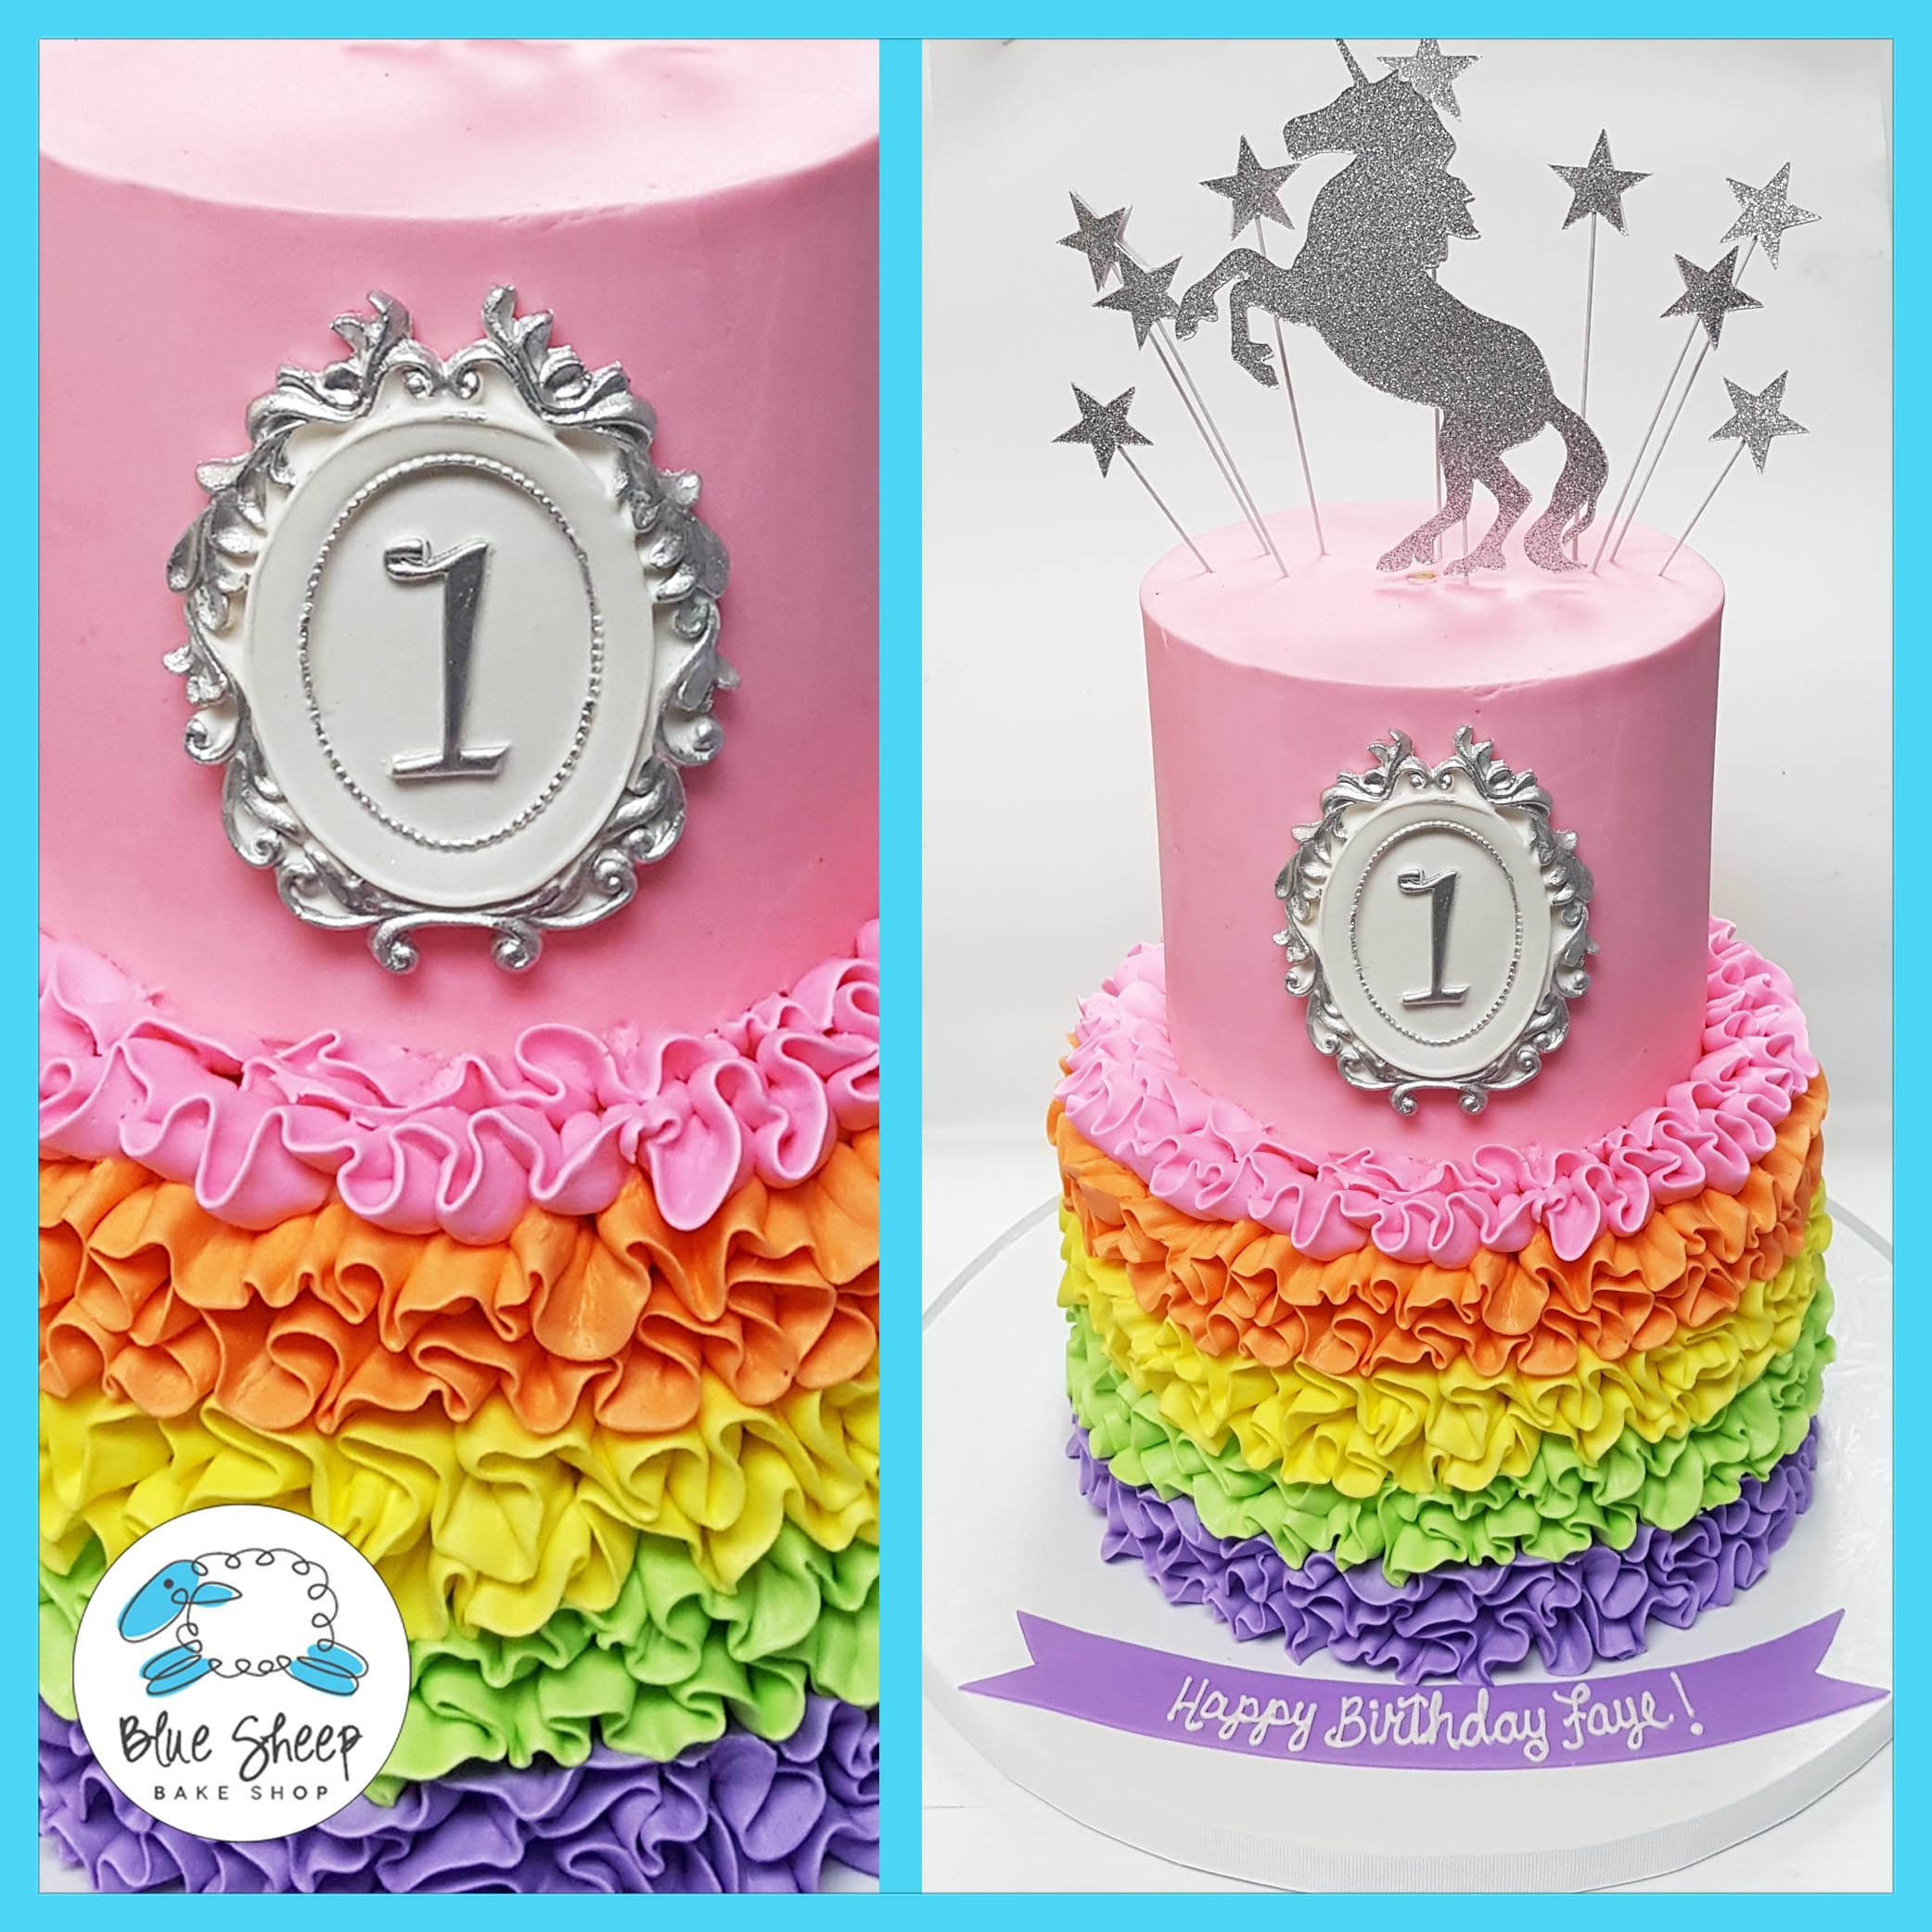 Ruffles Rainbows And Unicorns Birthday Cake Nj